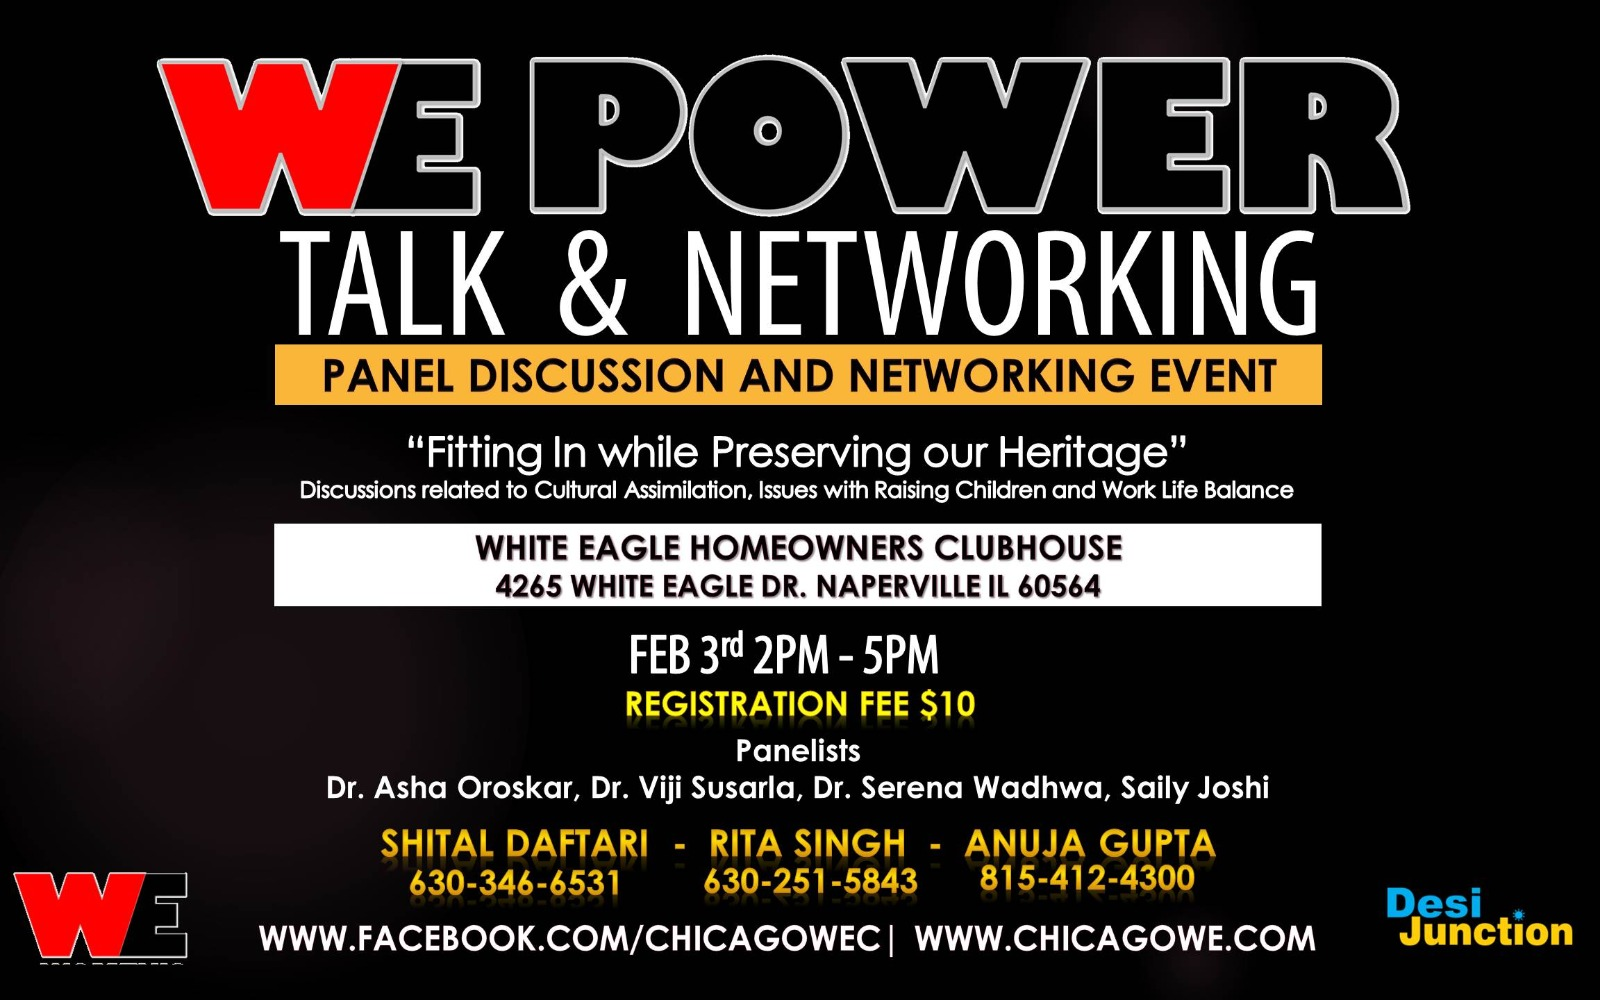 WE Power Talk and Networking Event